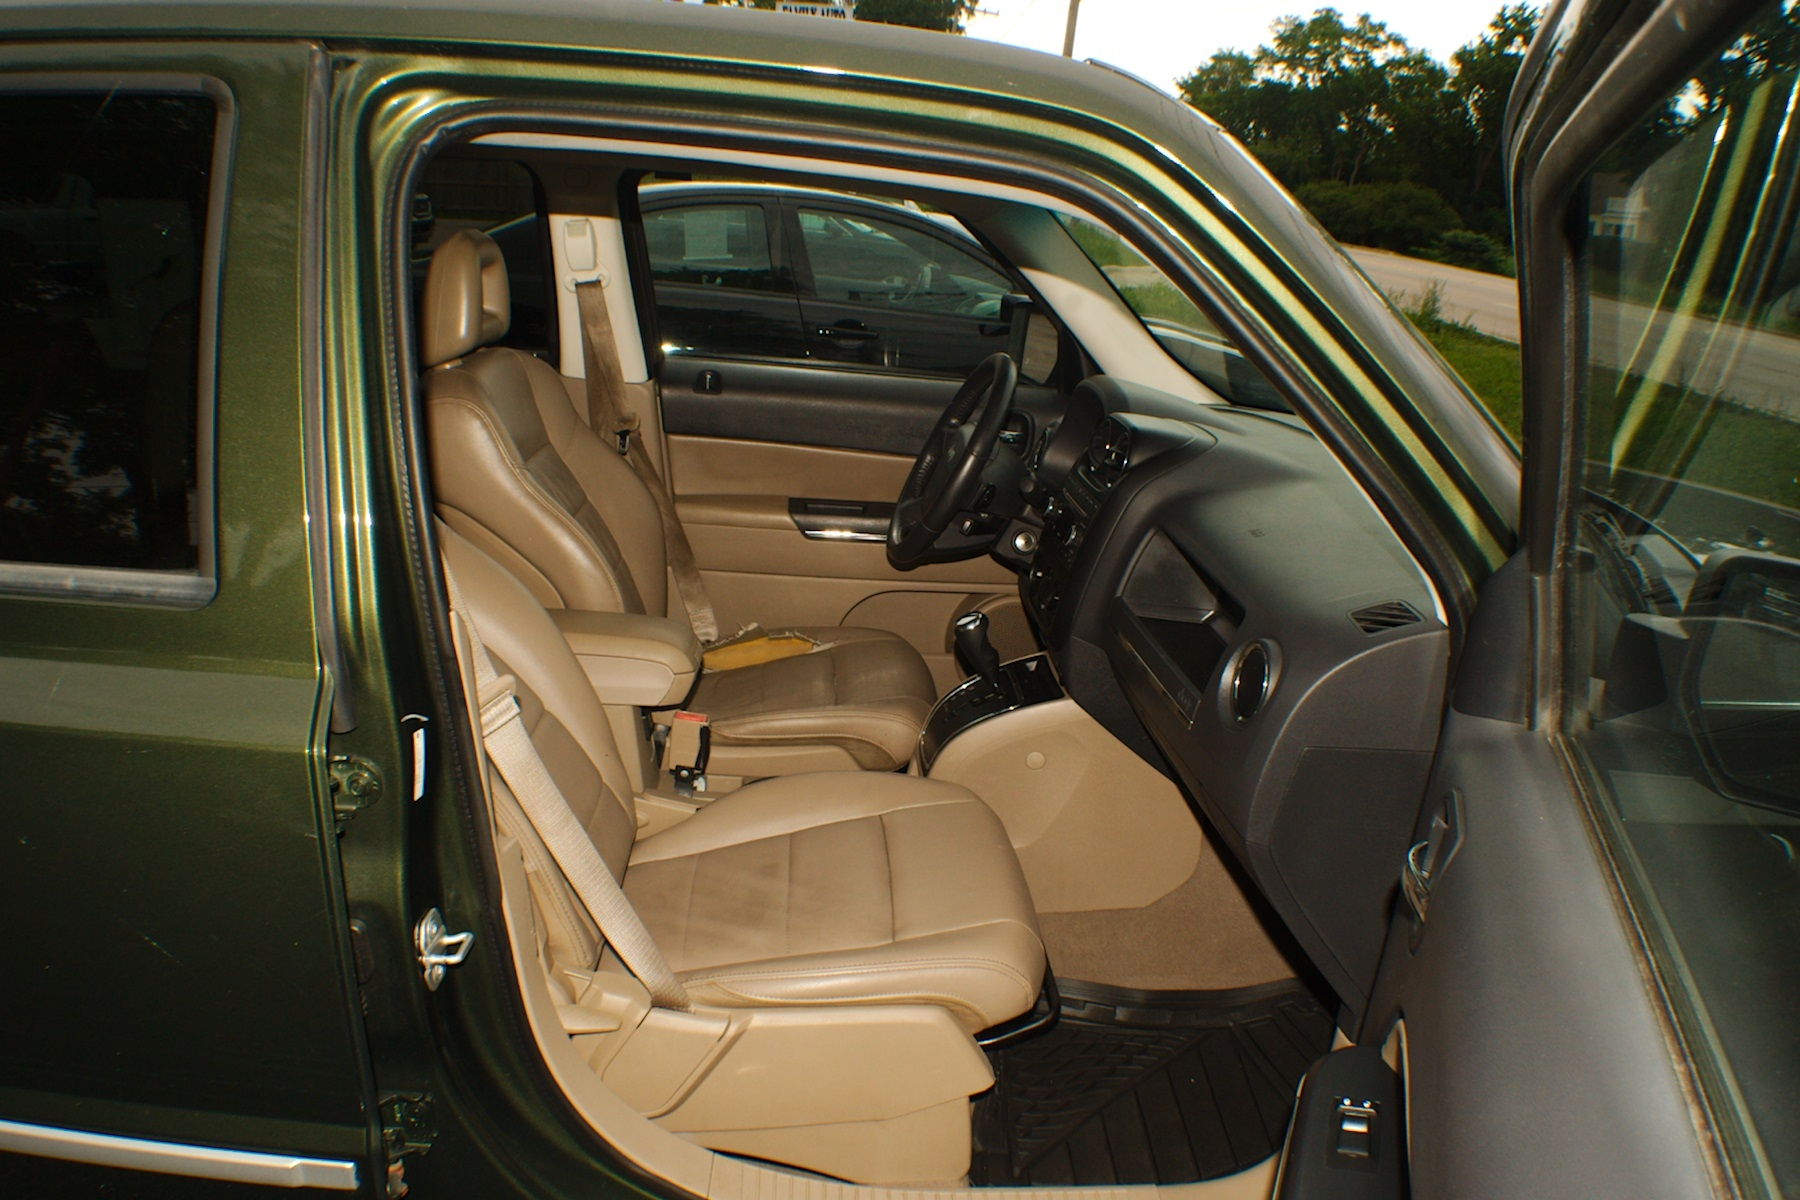 2009 Jeep Patriot 4x4 Limited Green Used SUV Sale Lake Villa Lake Zurich Lakemoor Milwaukee